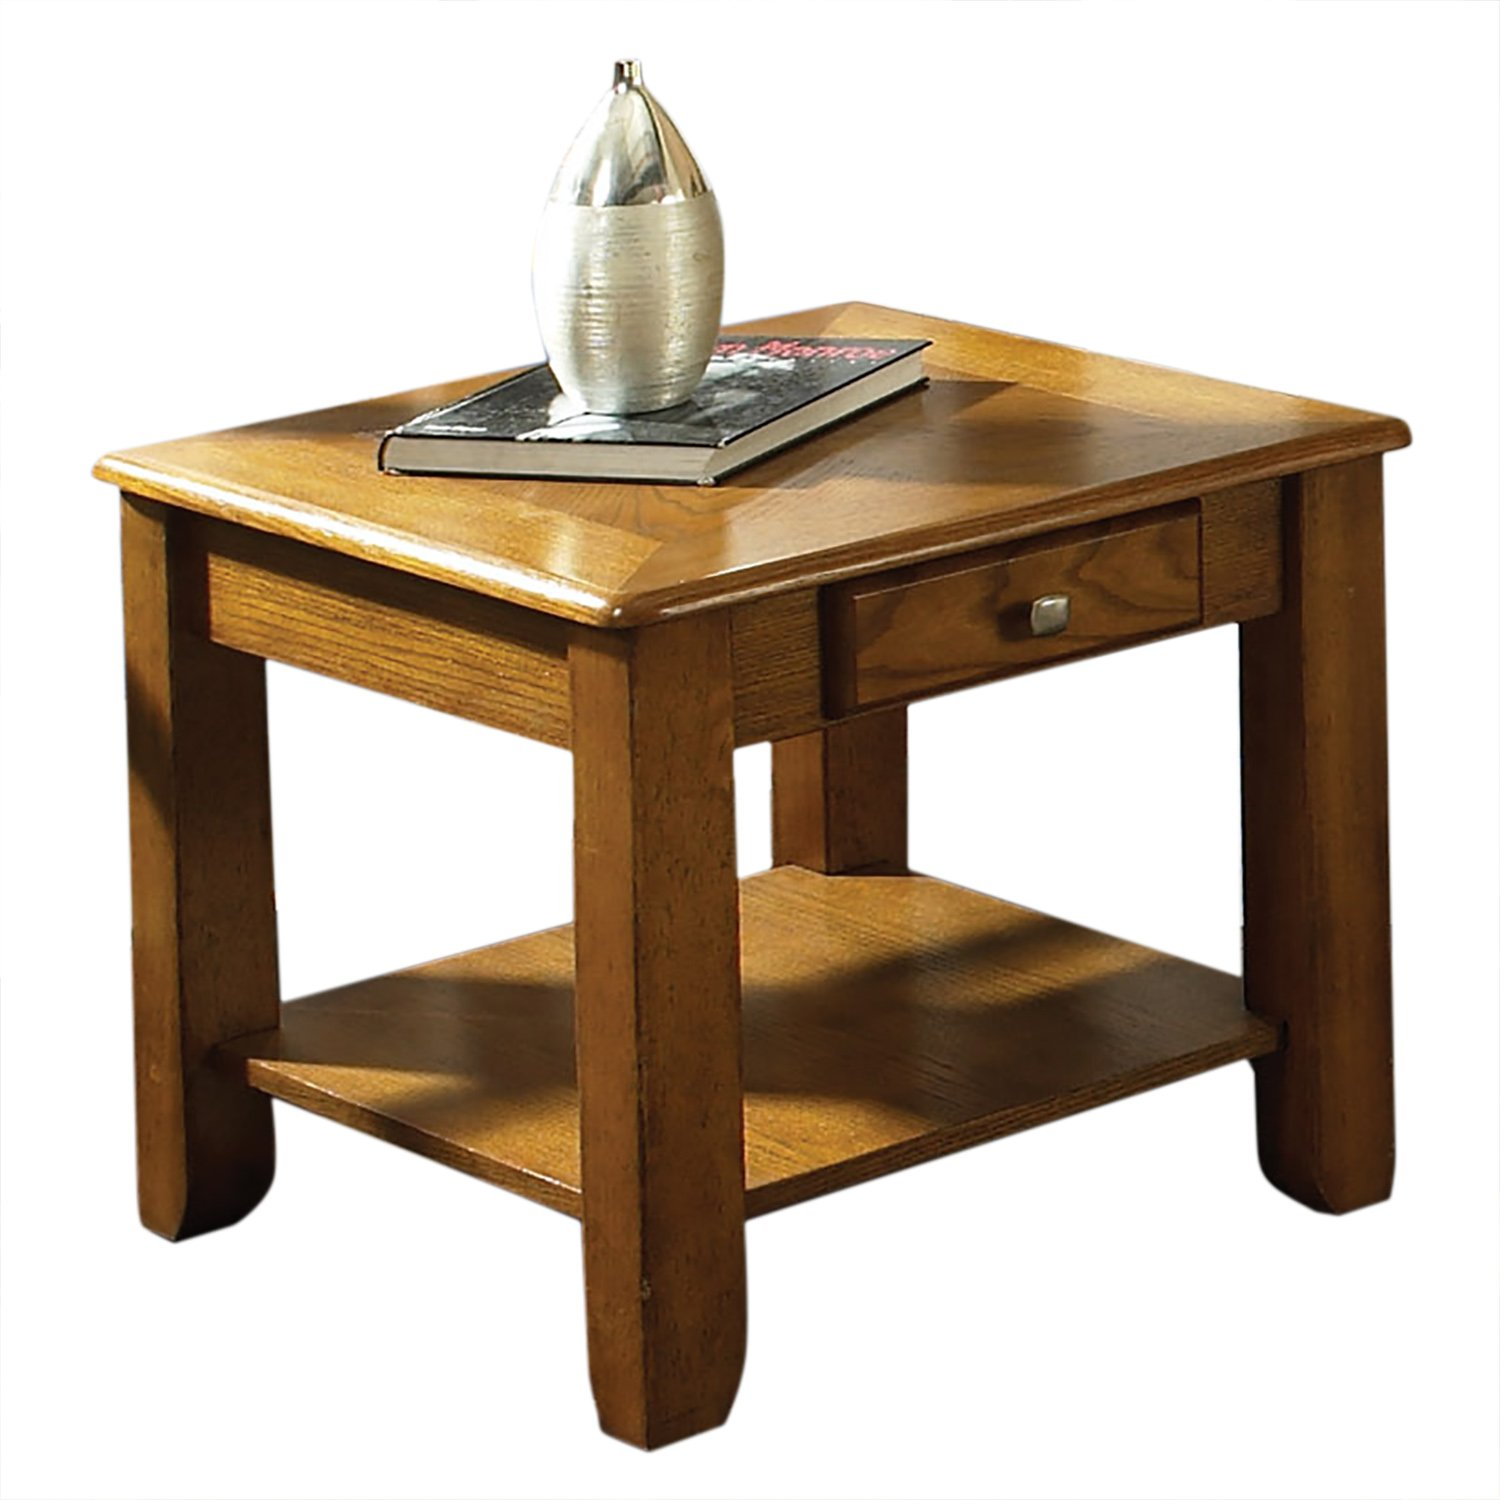 steve silver company nelson end table oak kitchen dining hawthorne glass top accent bronze corner furniture decorative chest folding wood coffee tiffany mission style lamps high